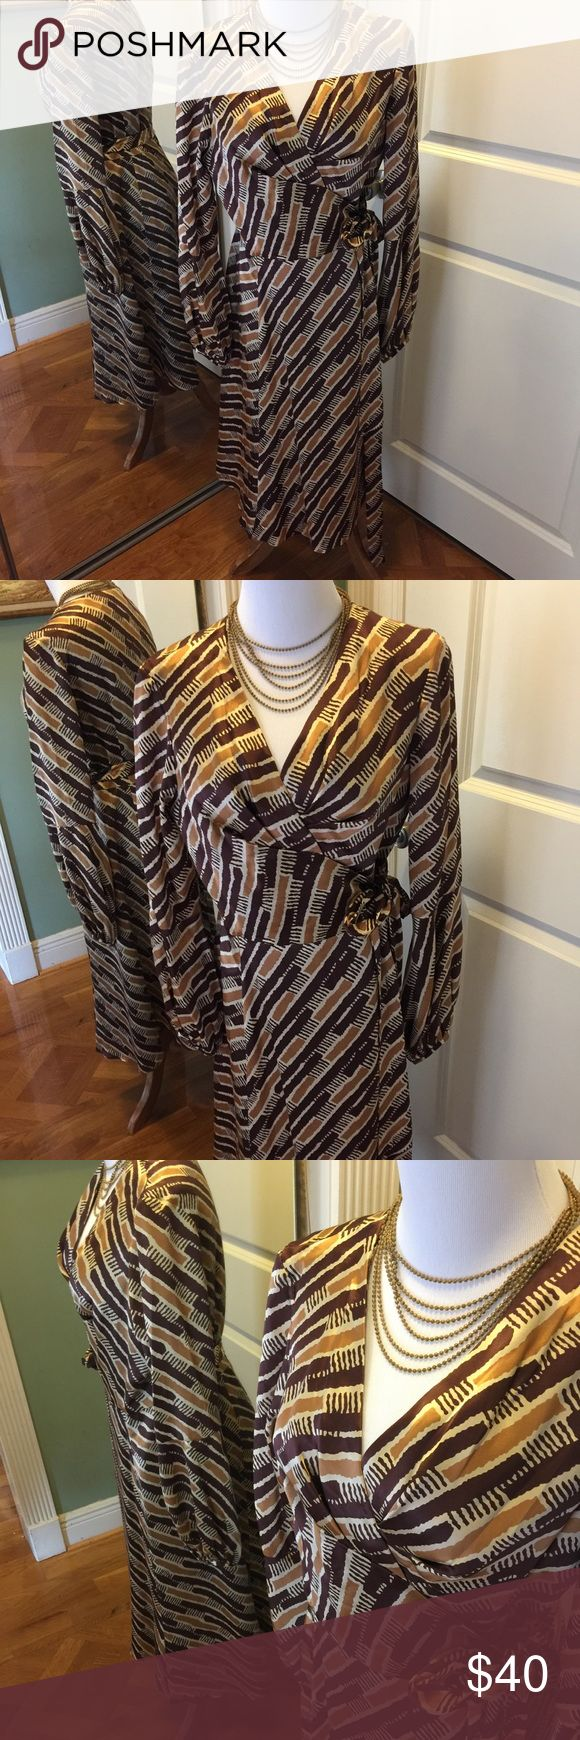 Donna Ricco silk wrap dress 6 100% silk dress wrap style by Donna Ricco in tones of brown on cream  perfect for fall  long sleeve Donna Ricco Dresses Midi